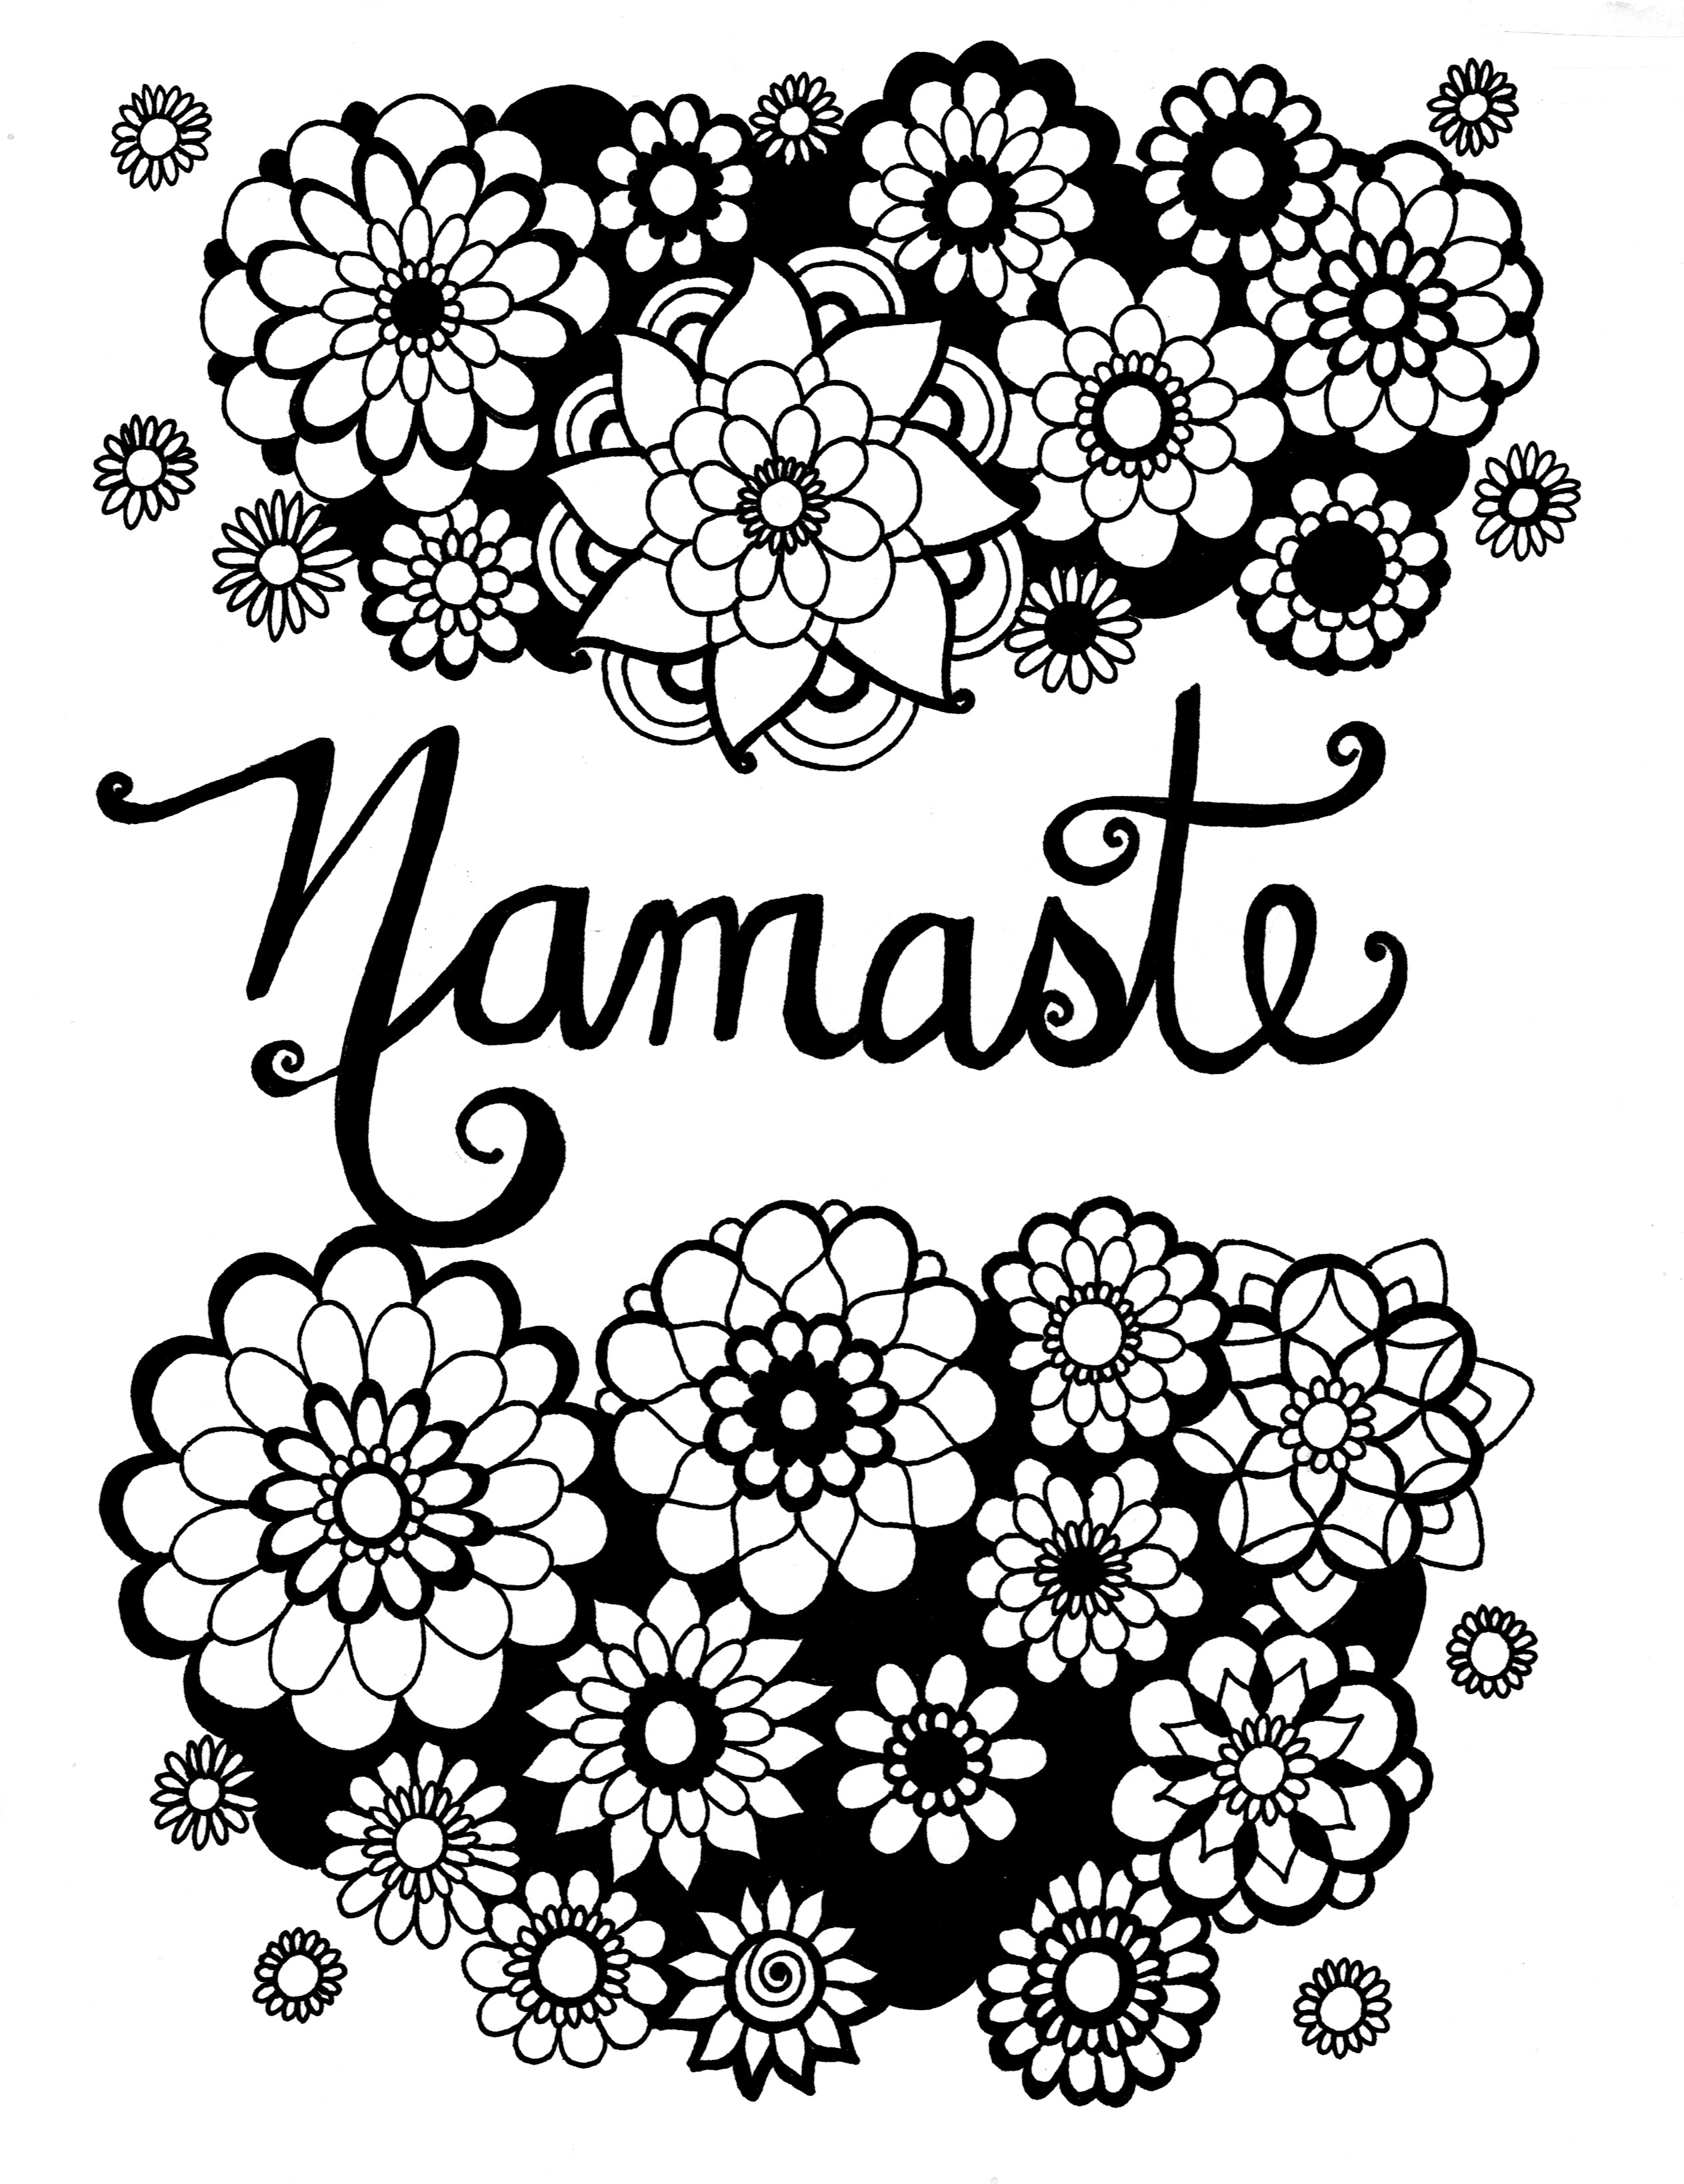 Namaste - You-Color